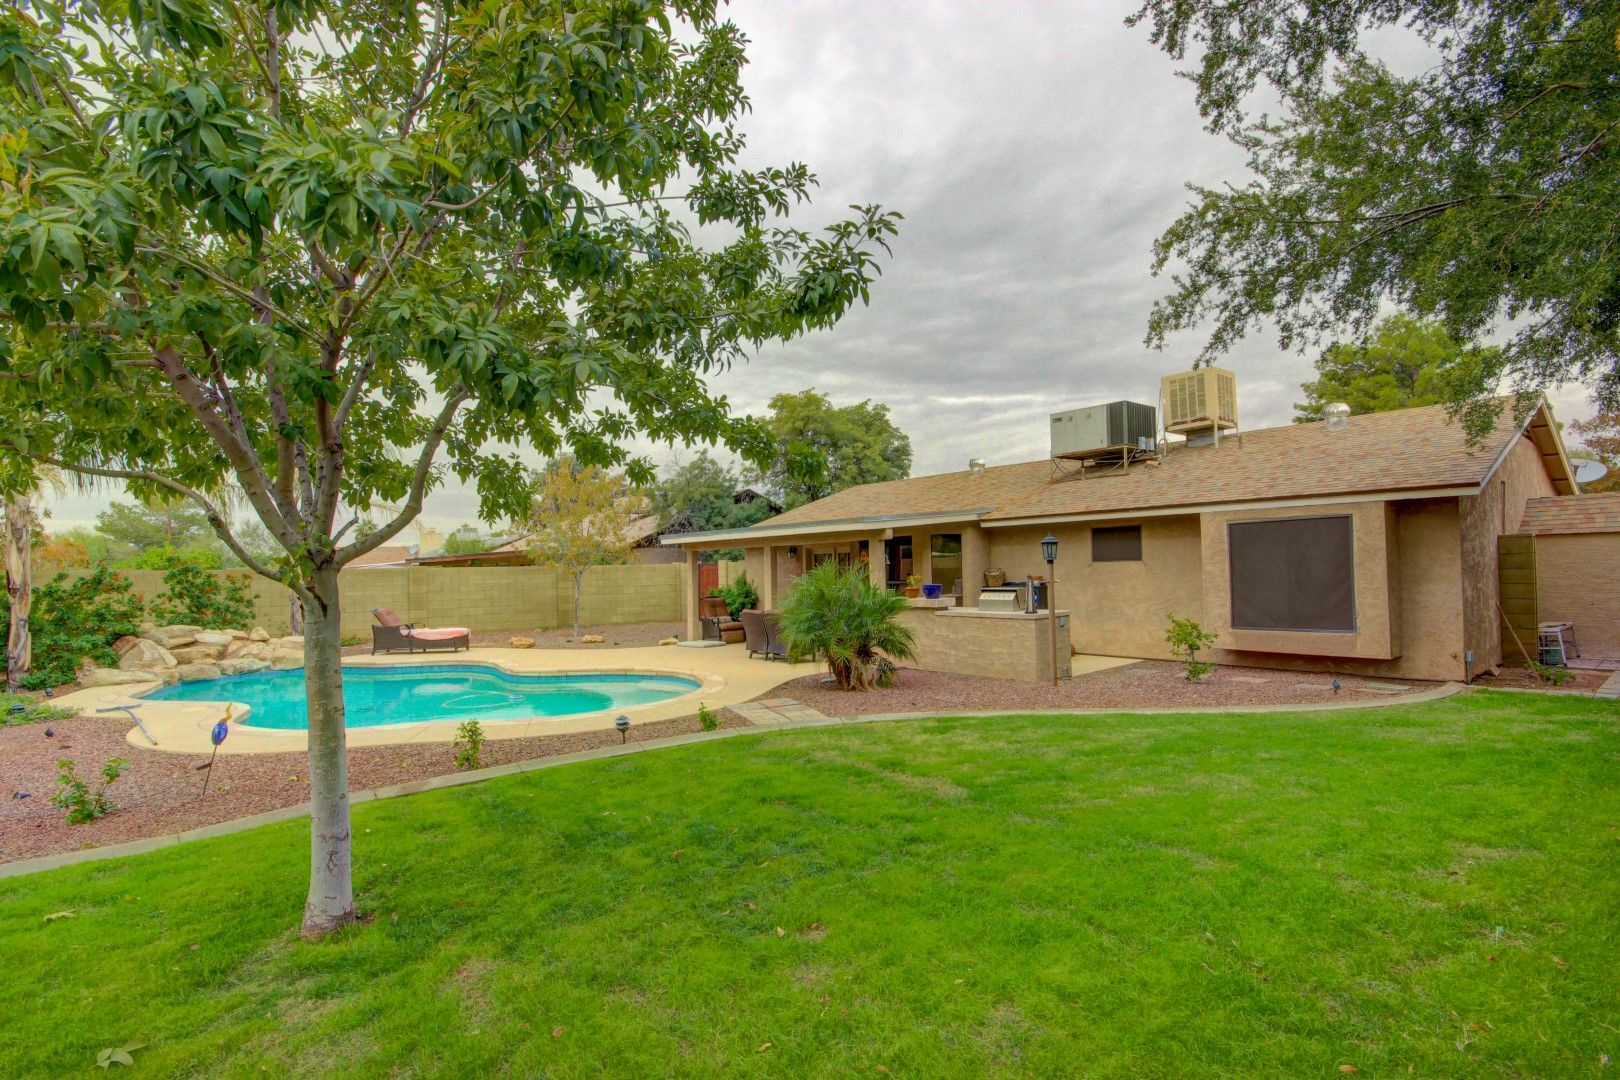 Beautiful Remodeled Home In Glendale Az With A Pool And Huge